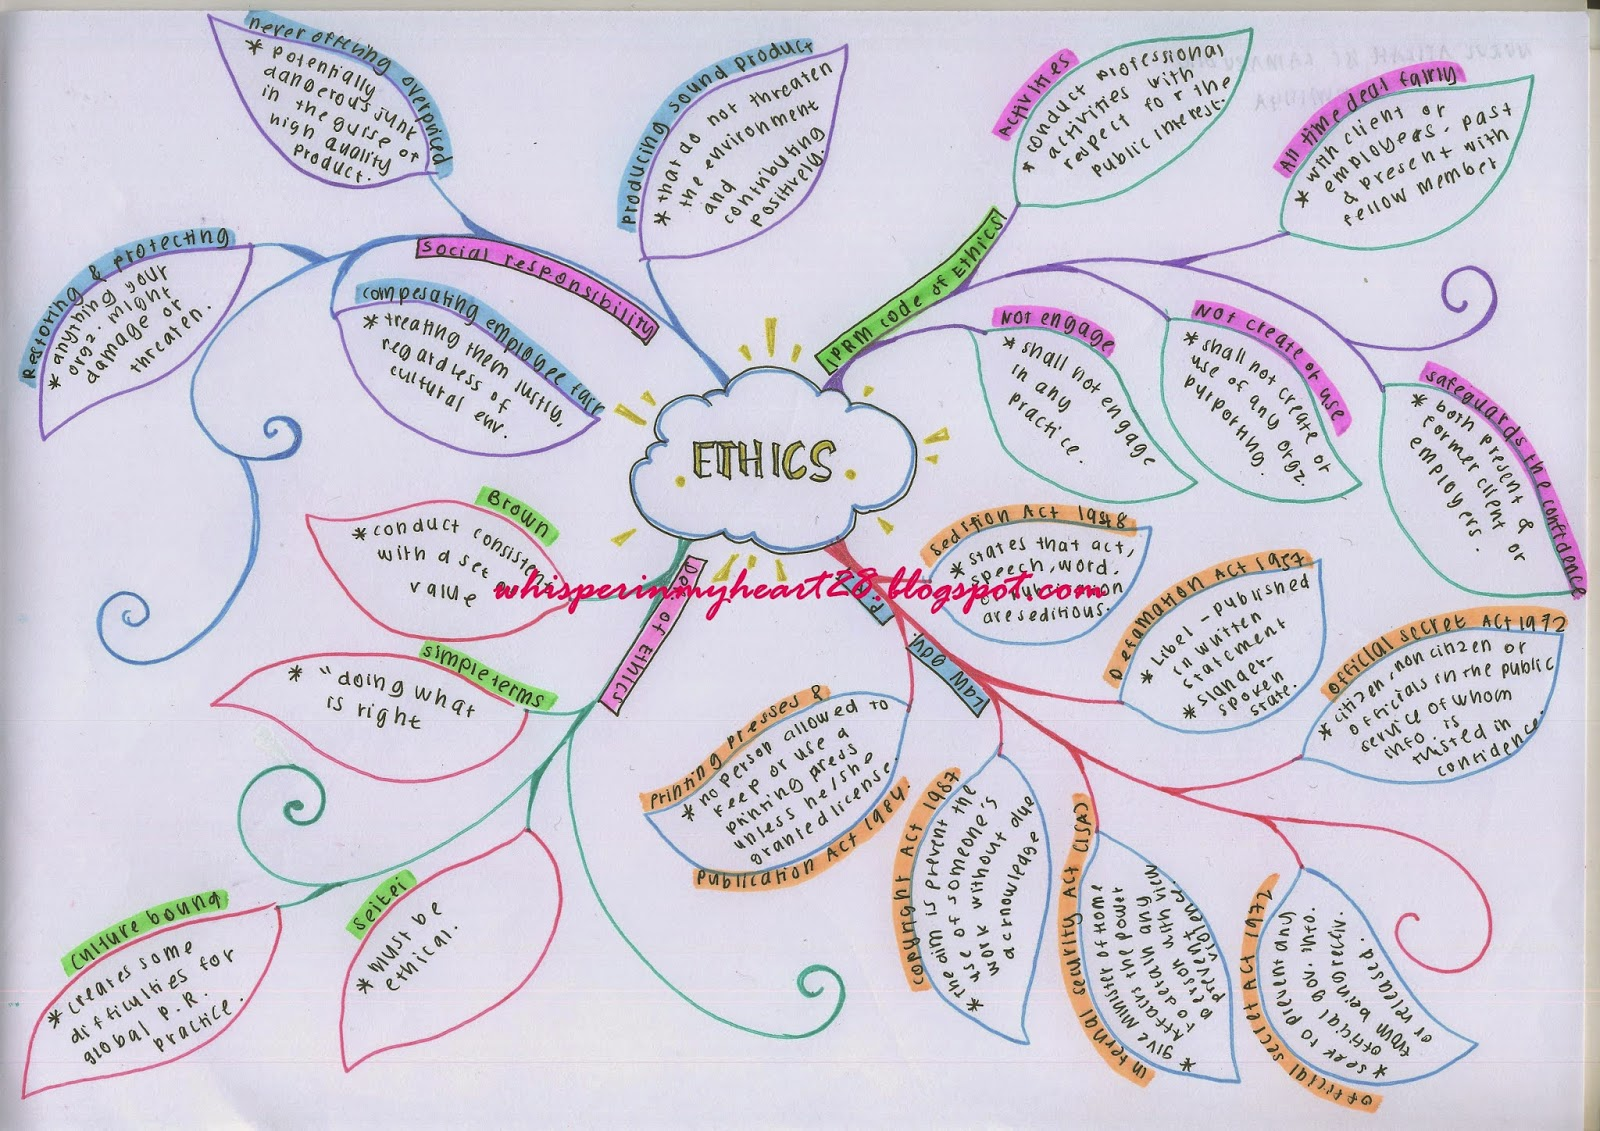 ethics beautiful mind Question searching online and watch the beautiful mind and then: review the movie and write one page summary on any ethical or unethical things that you are able to identify.